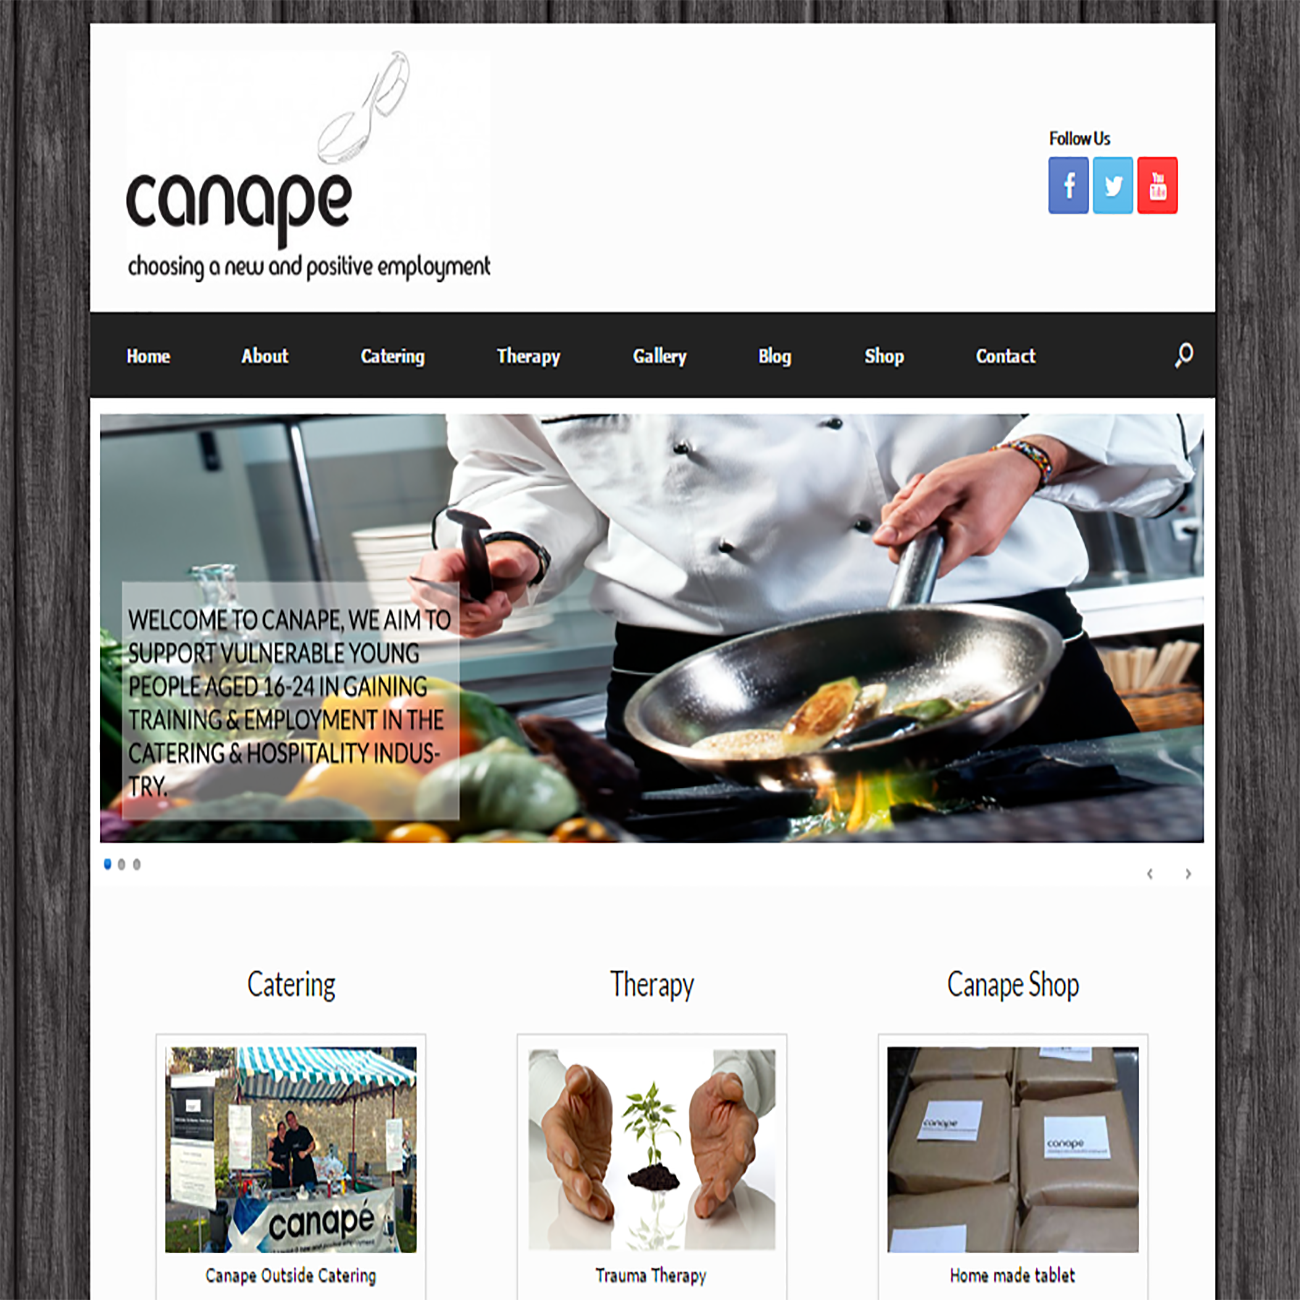 Canape - Choosing a new & positive employment CMS website